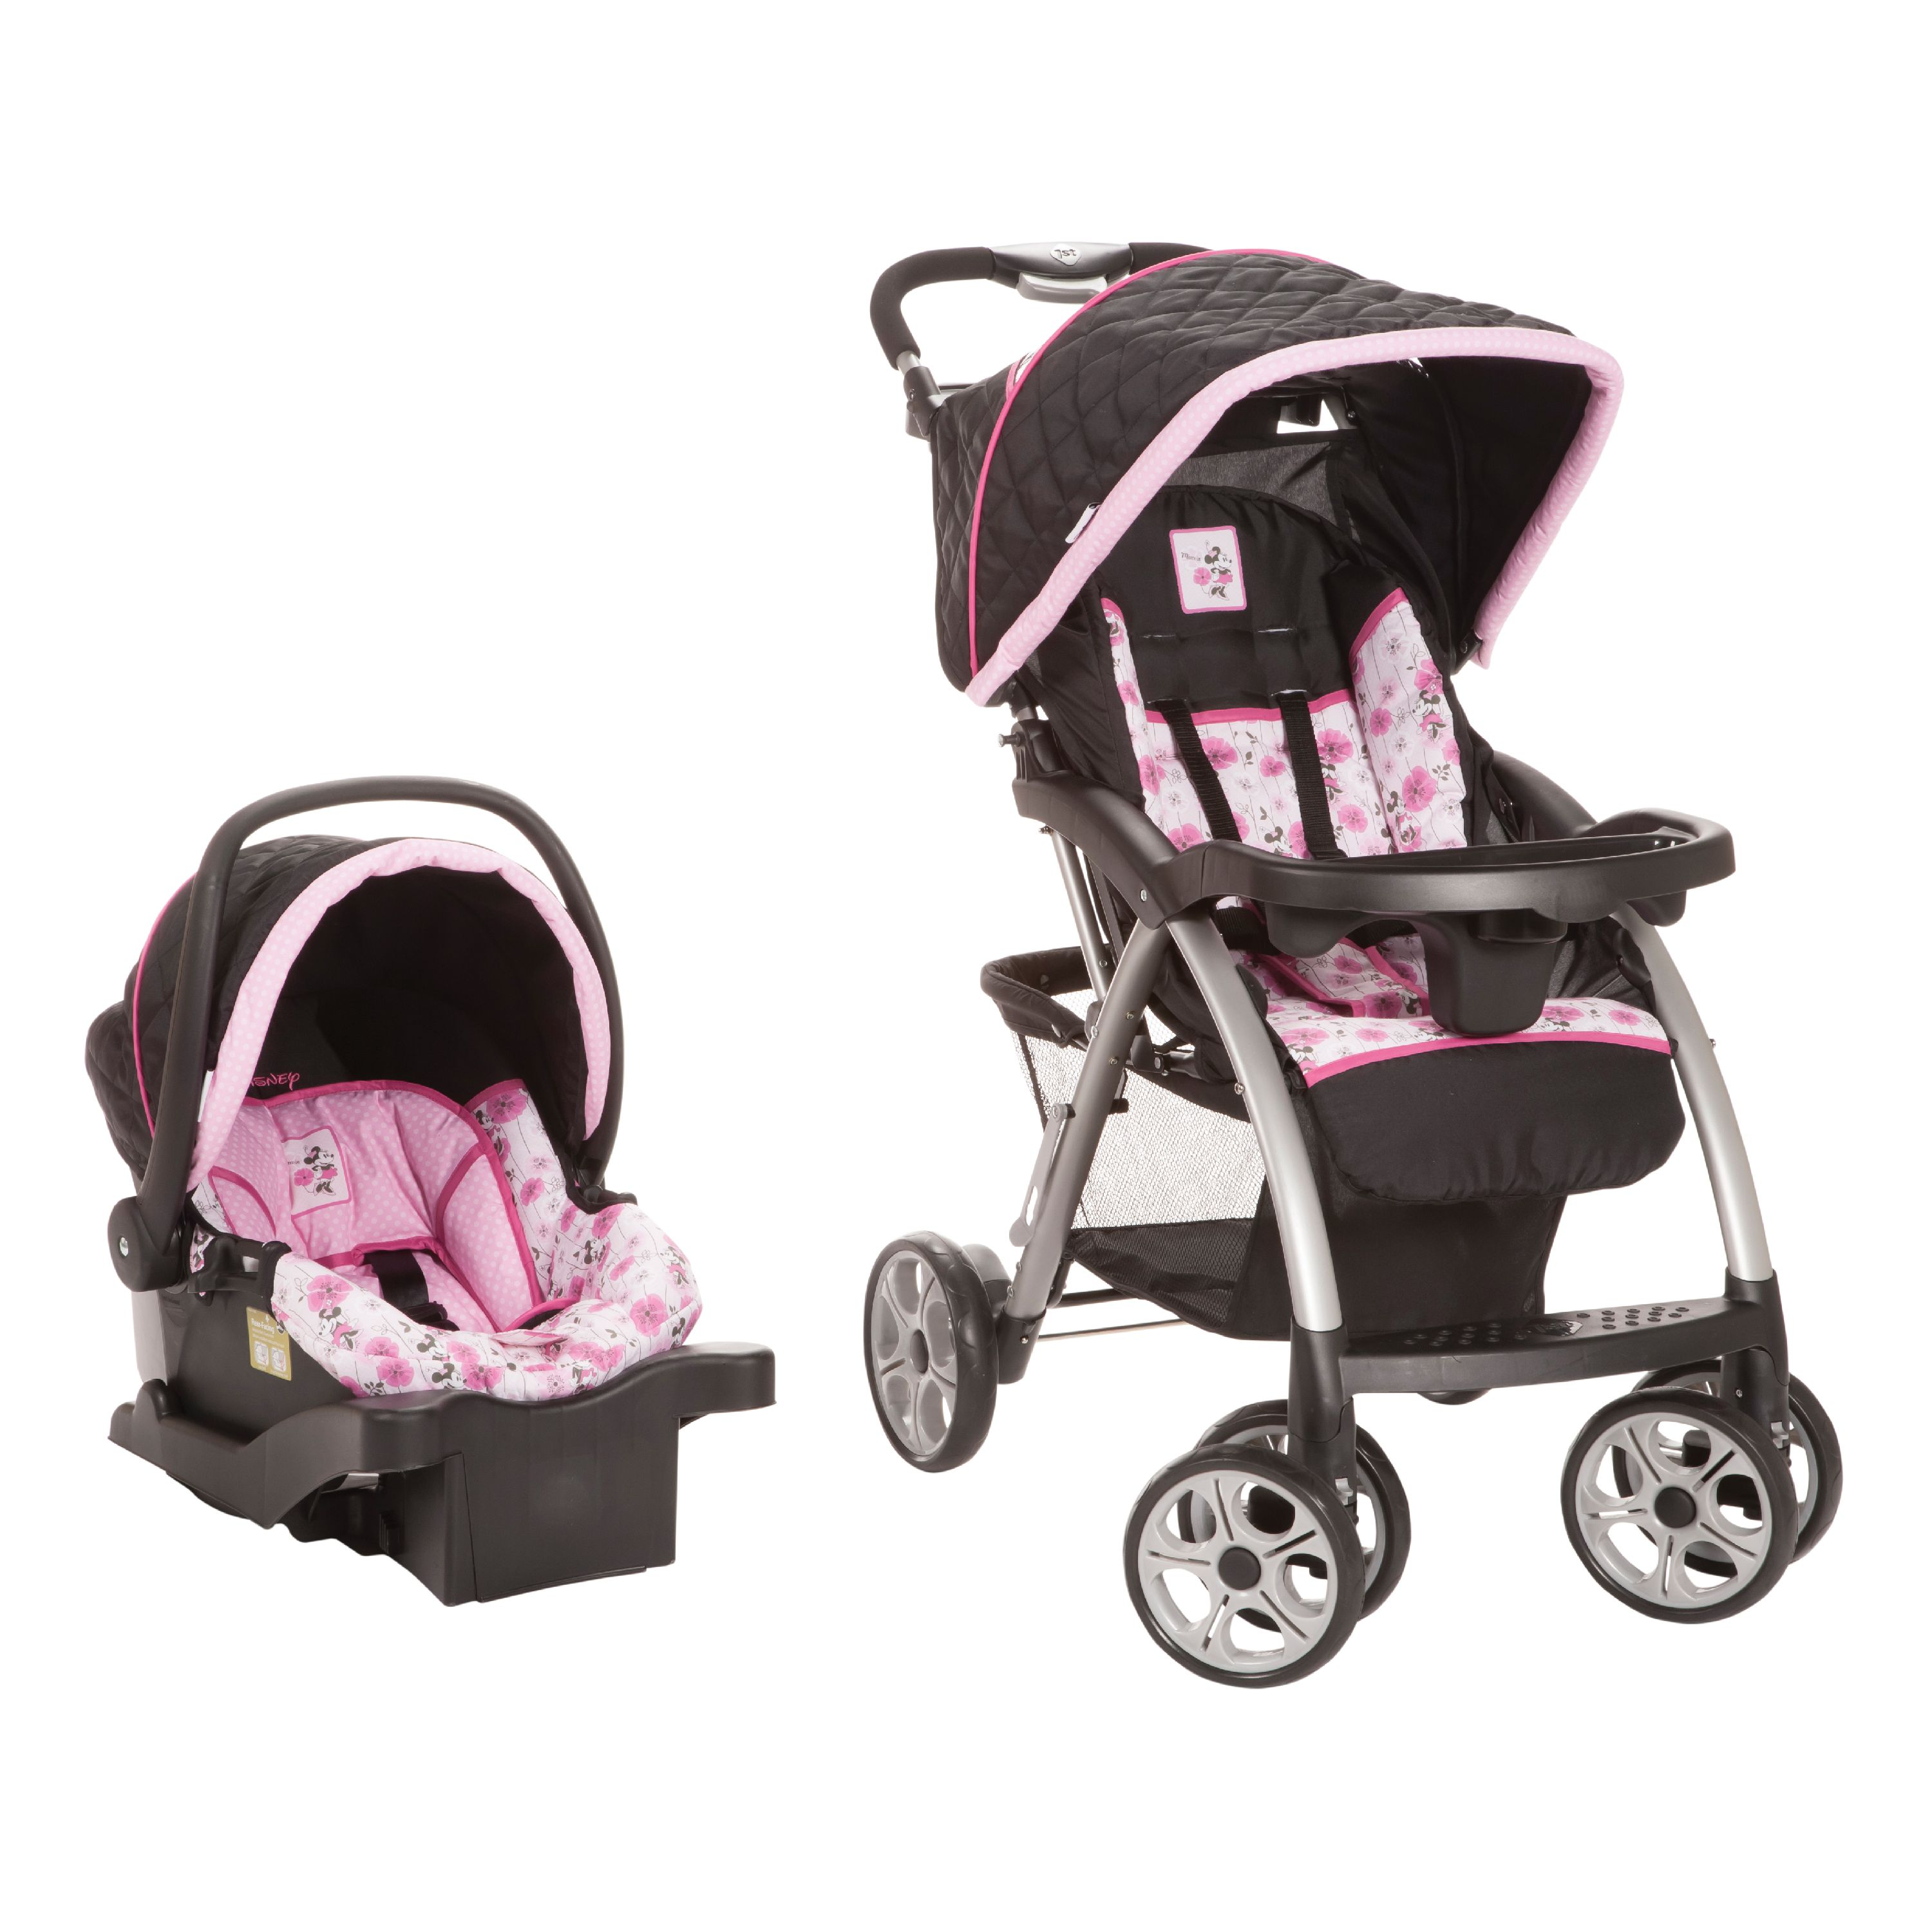 Disney Baby Saunter Luxe Travel System